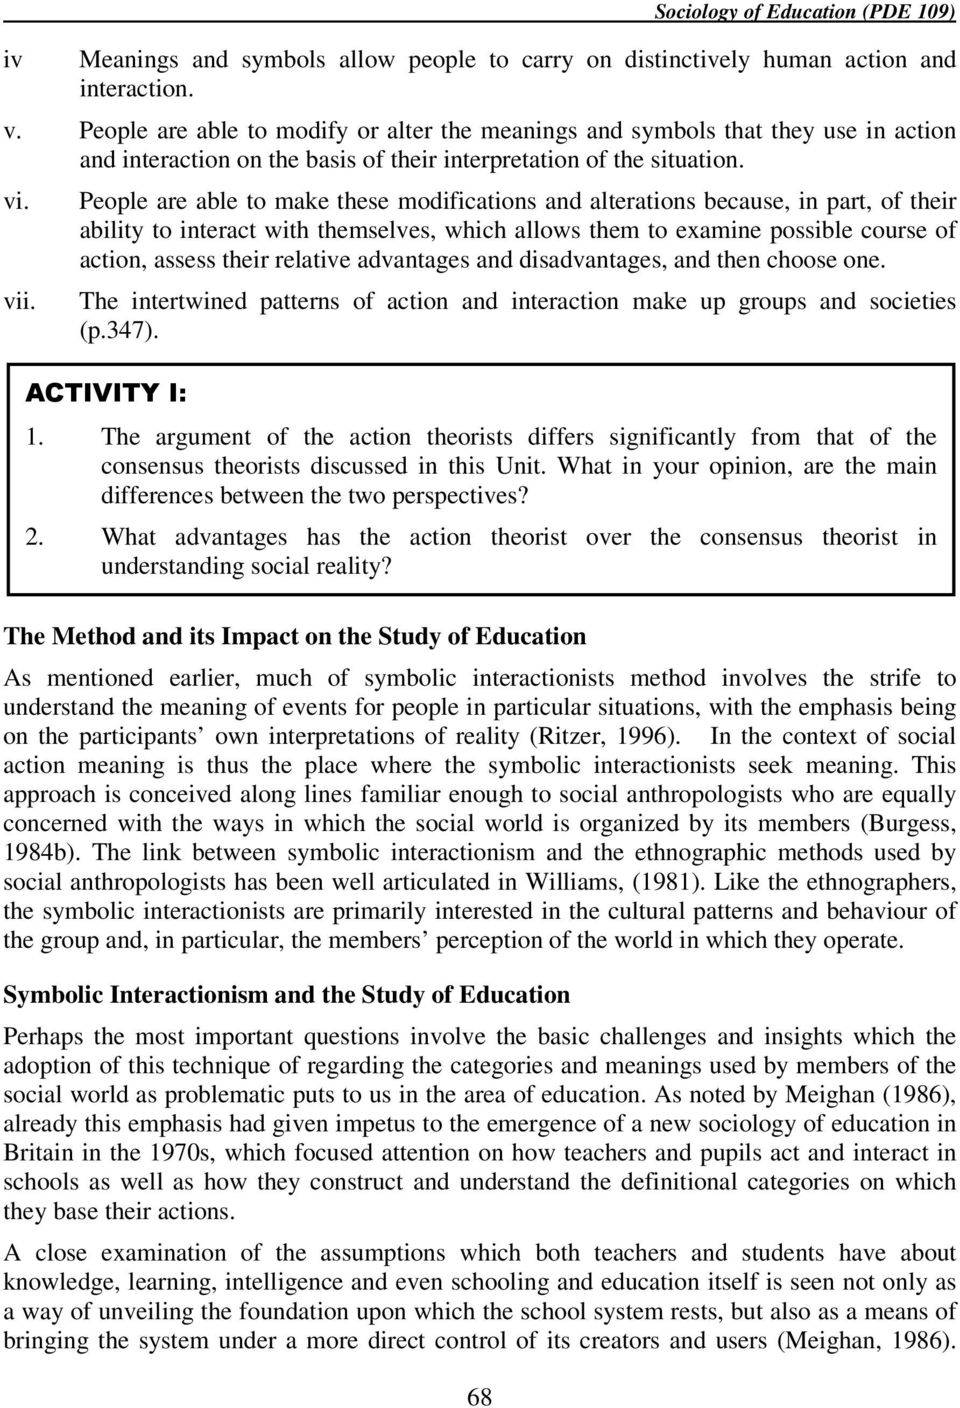 what is discovery essay art